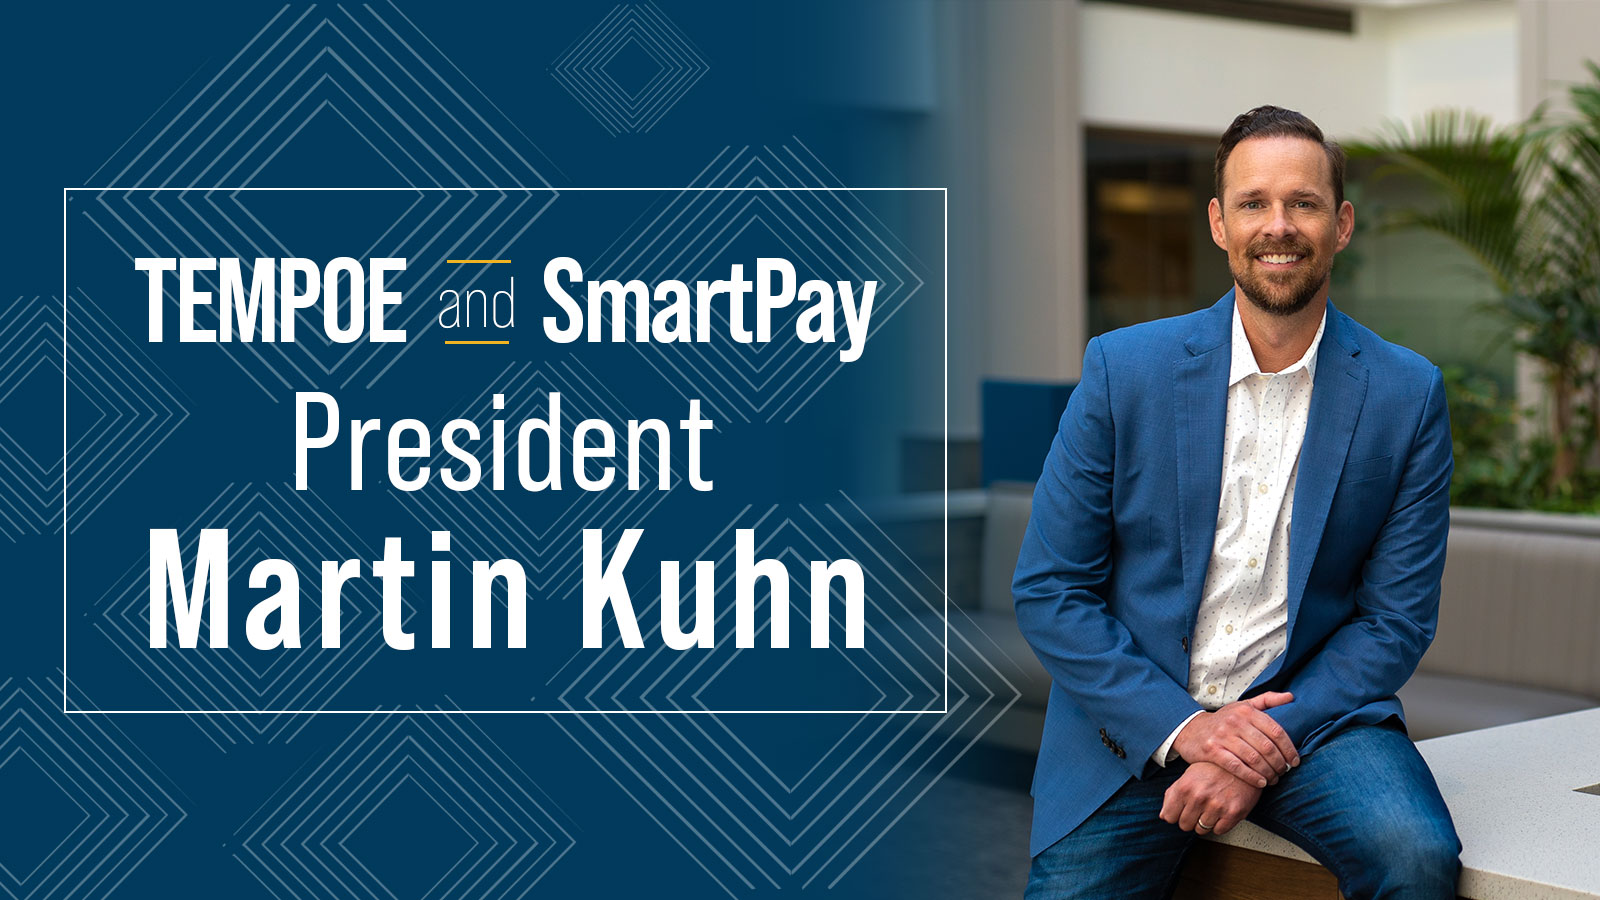 TEMPOE and SmartPay Announce Martin Kuhn as President